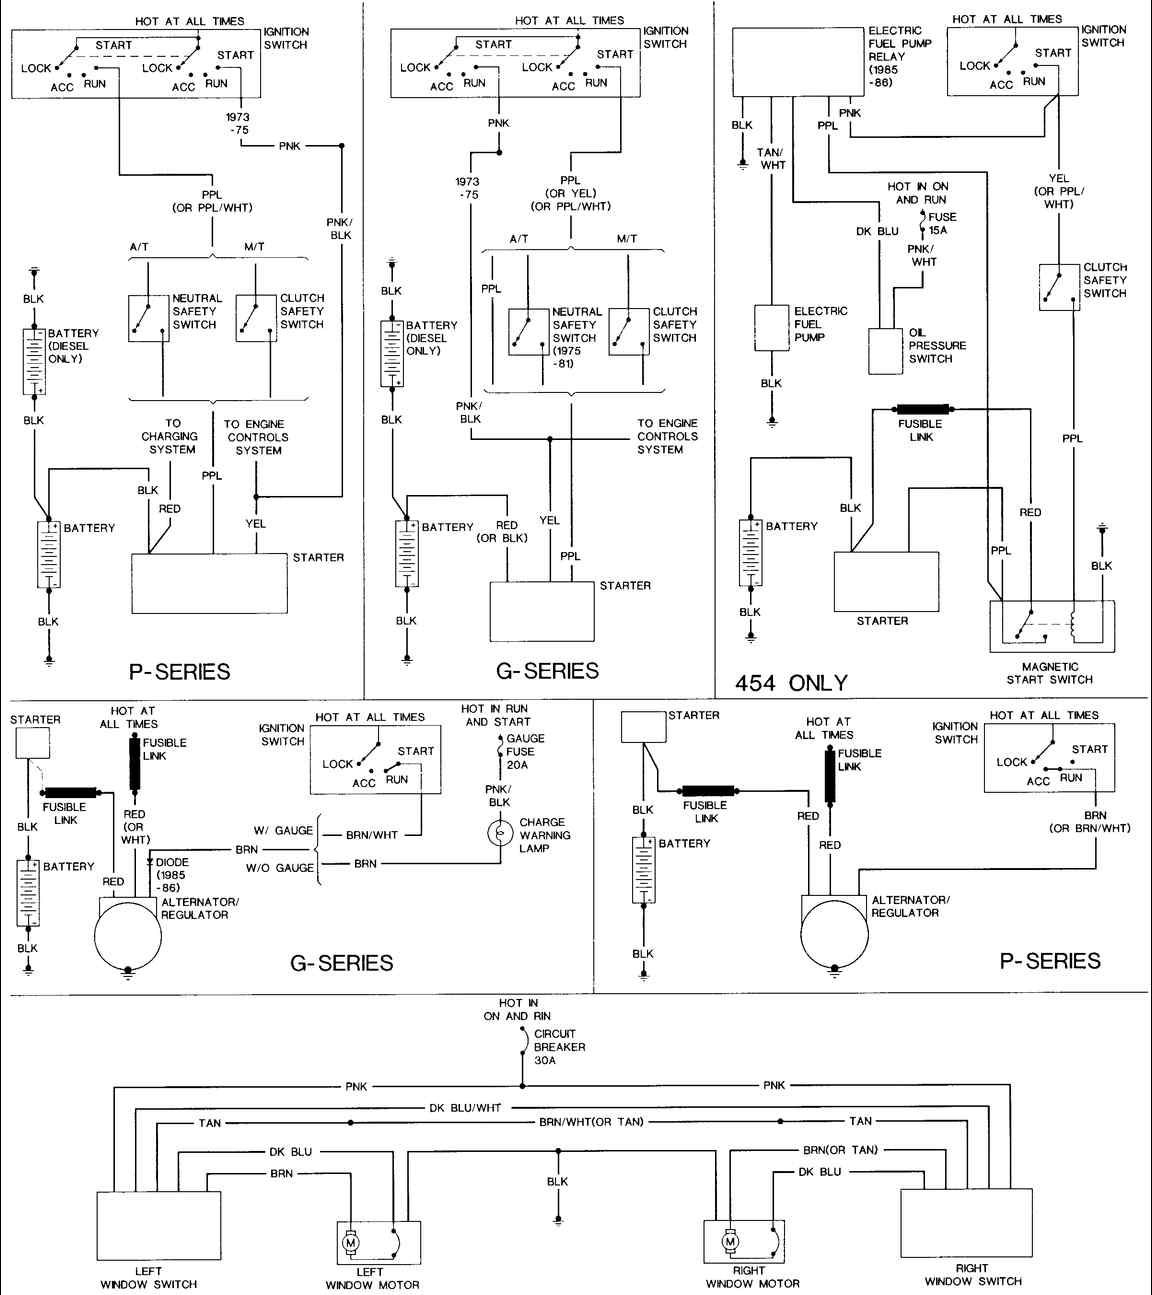 0c73623a181dc376dbb4777e2029d285 85 chevy truck wiring diagram 85 chevy van the steering column Basic Electrical Wiring Diagrams at creativeand.co